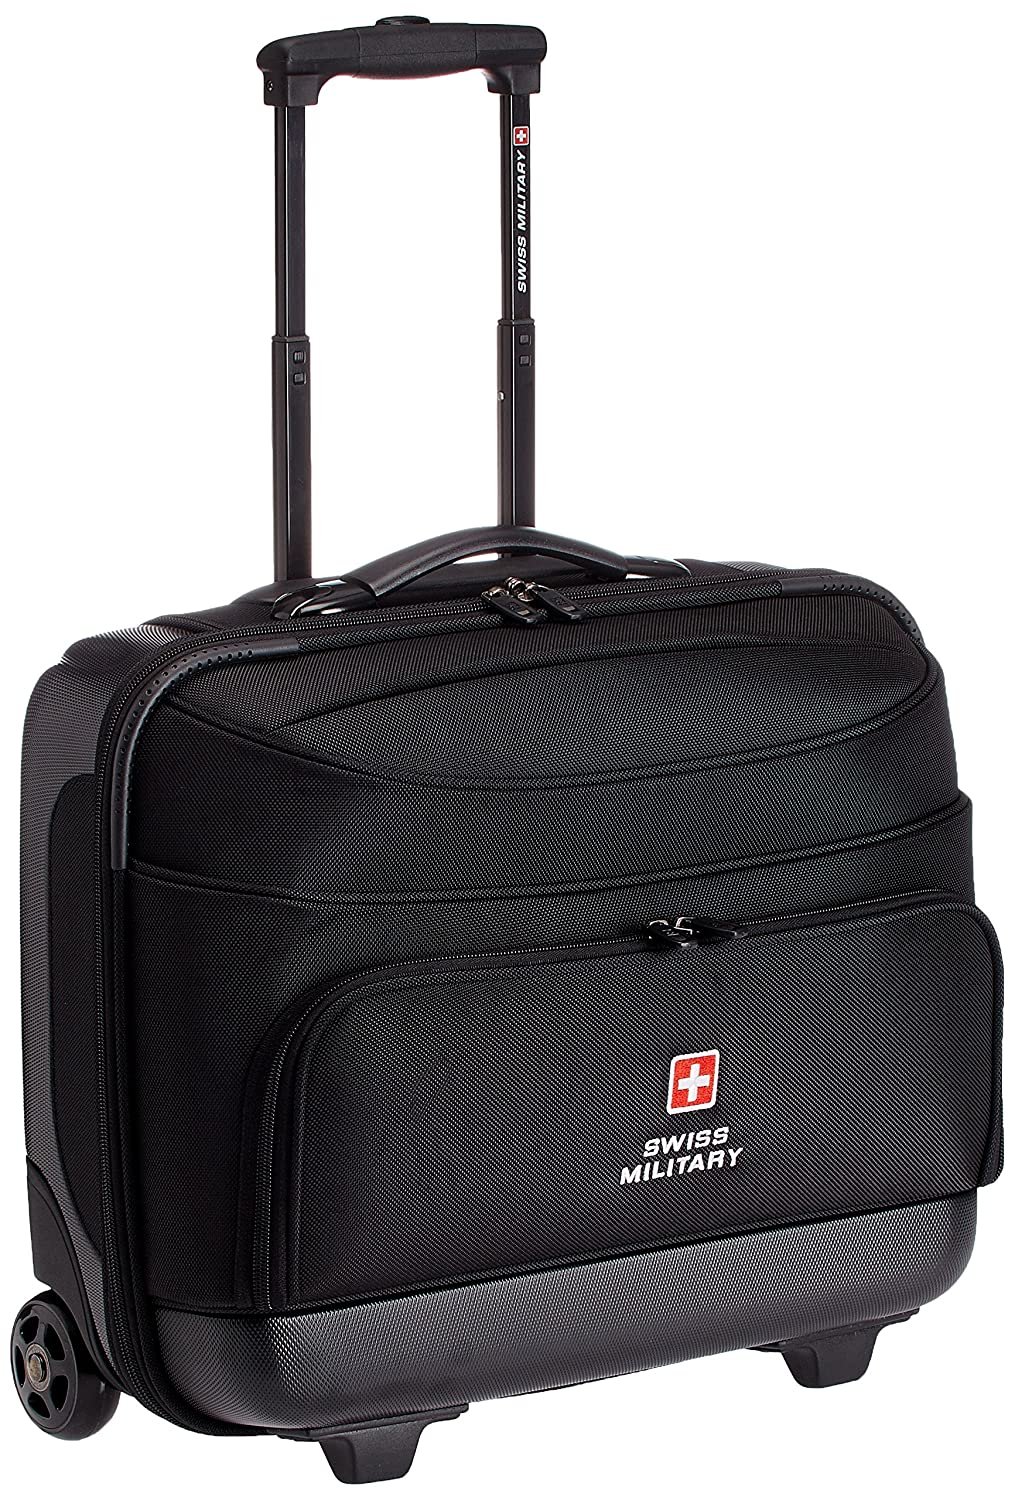 6746c7431 Swiss Military 45 Ltrs Black Laptop Trolley Bag (LTB-2): Amazon.in ...